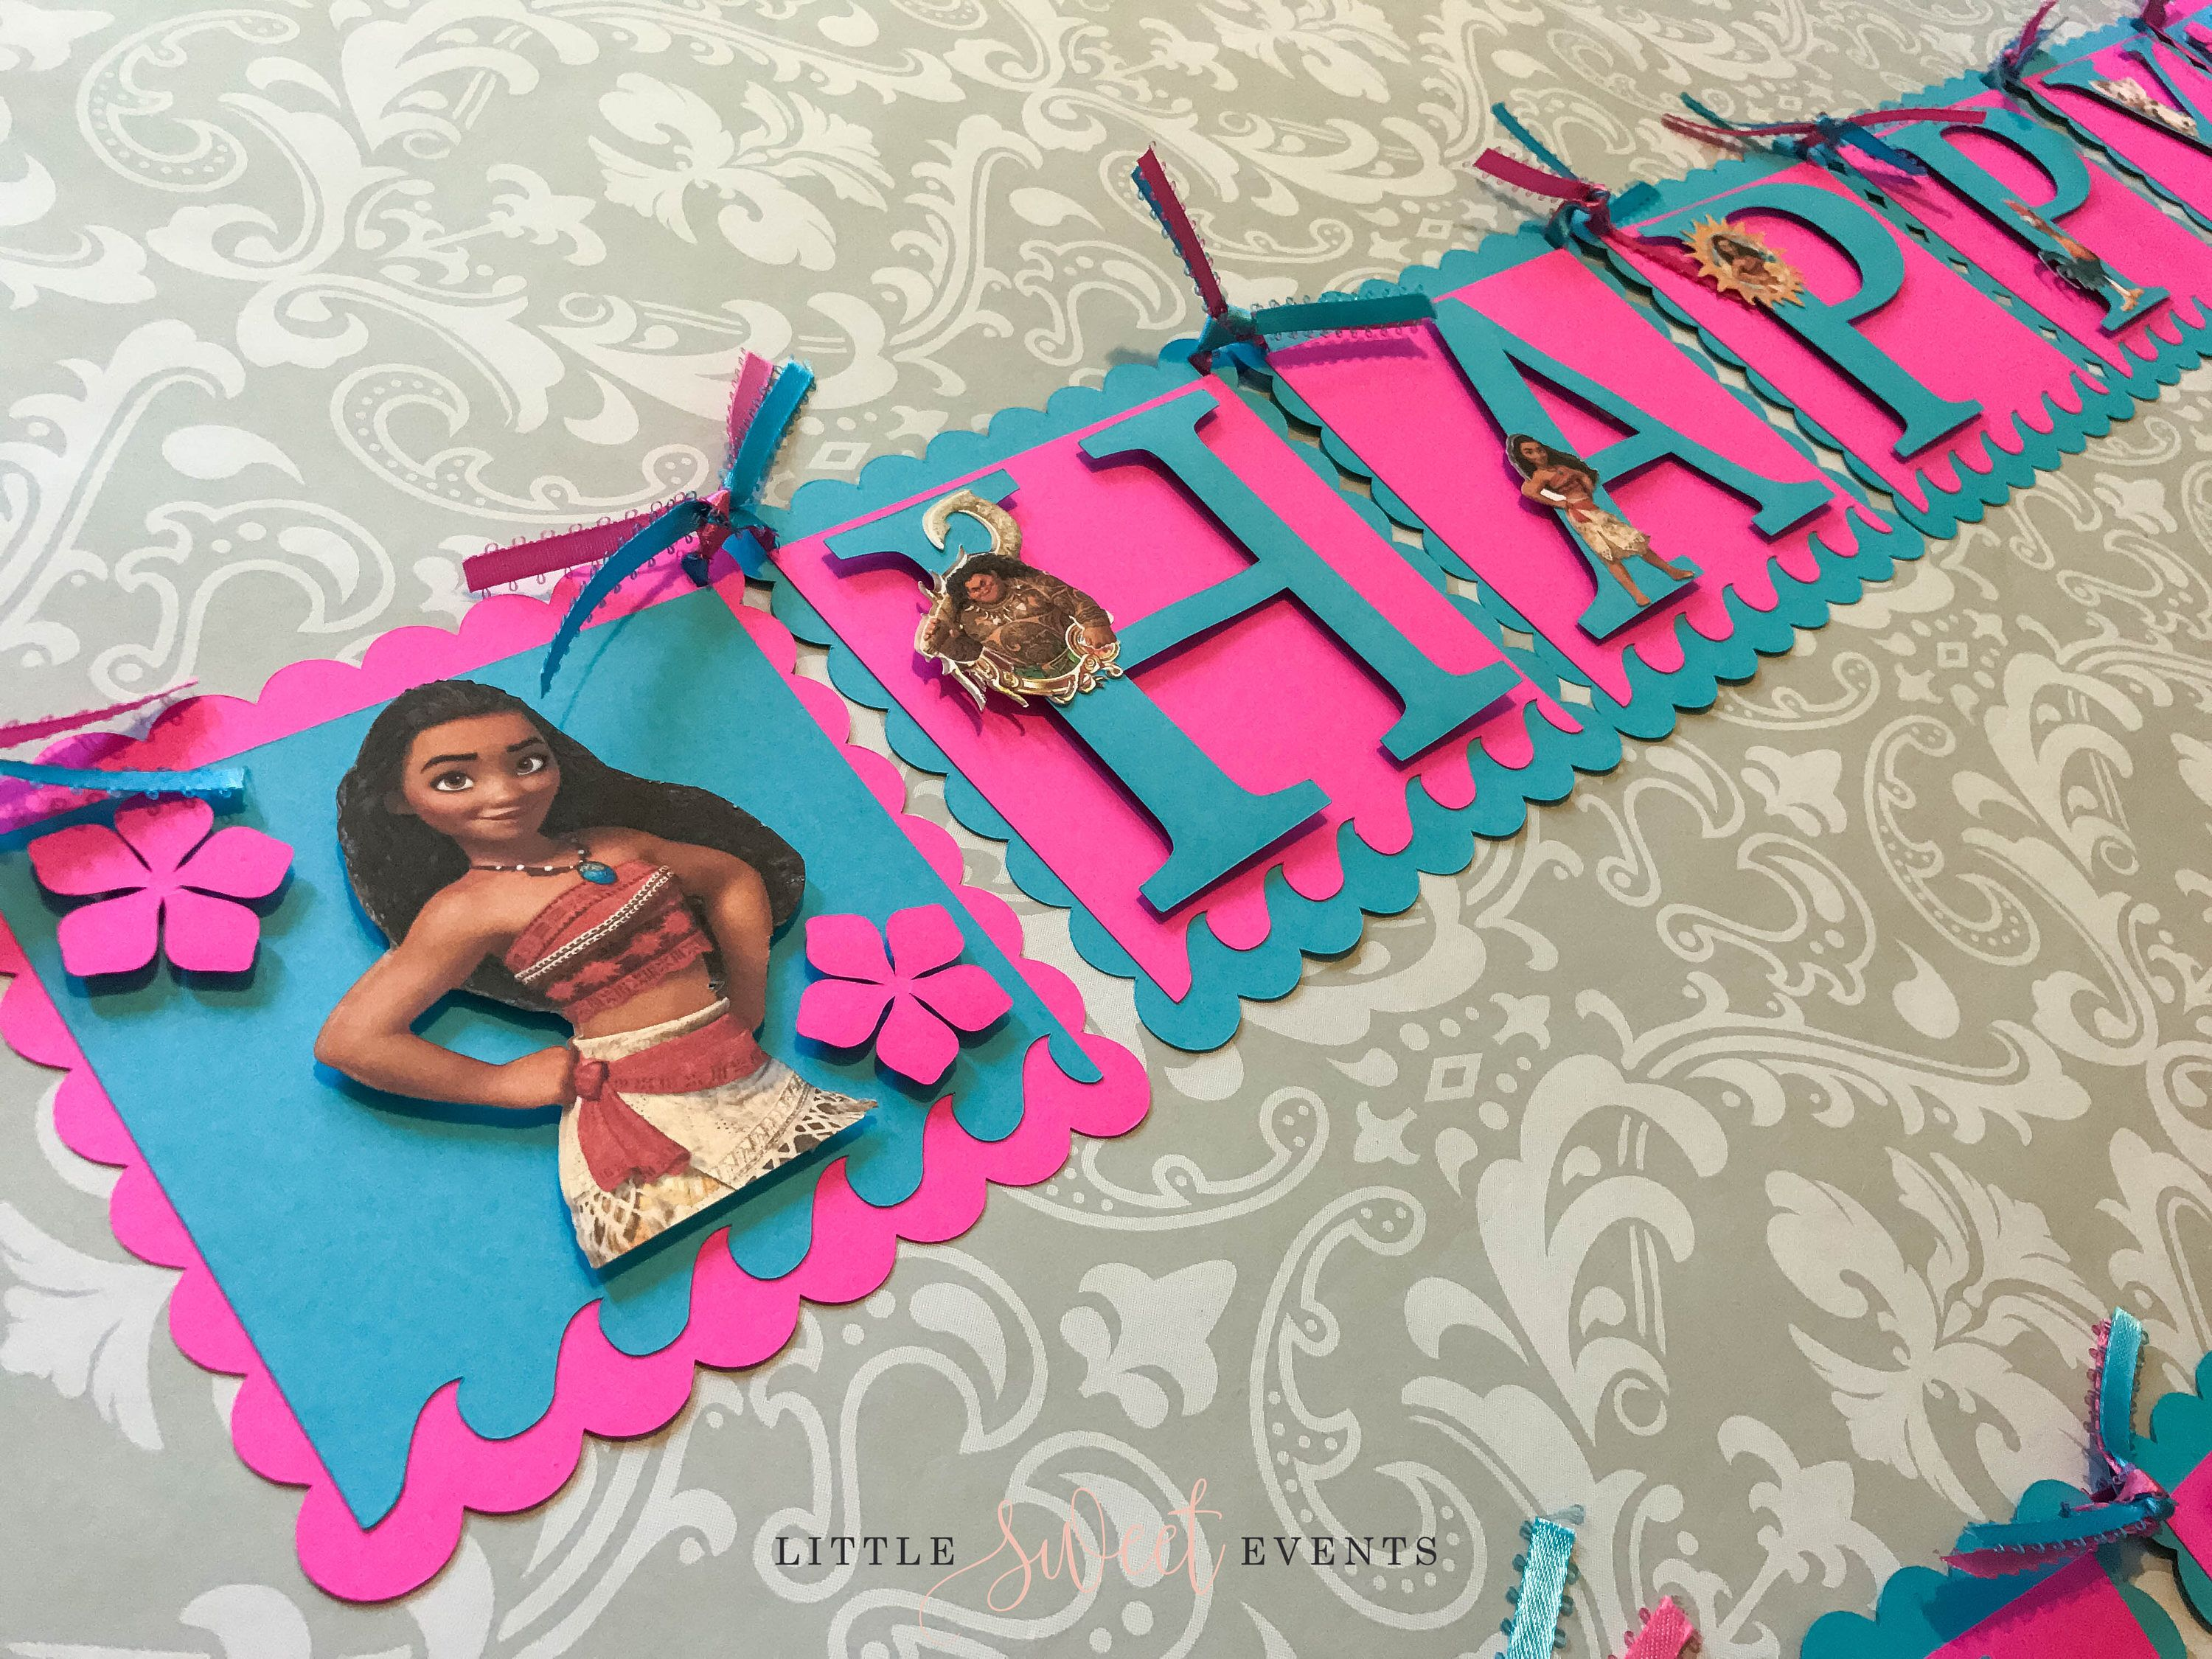 moana birthday banner Pin by Heather DeJonker on Kristins 5th Birthday | Moana birthday  moana birthday banner